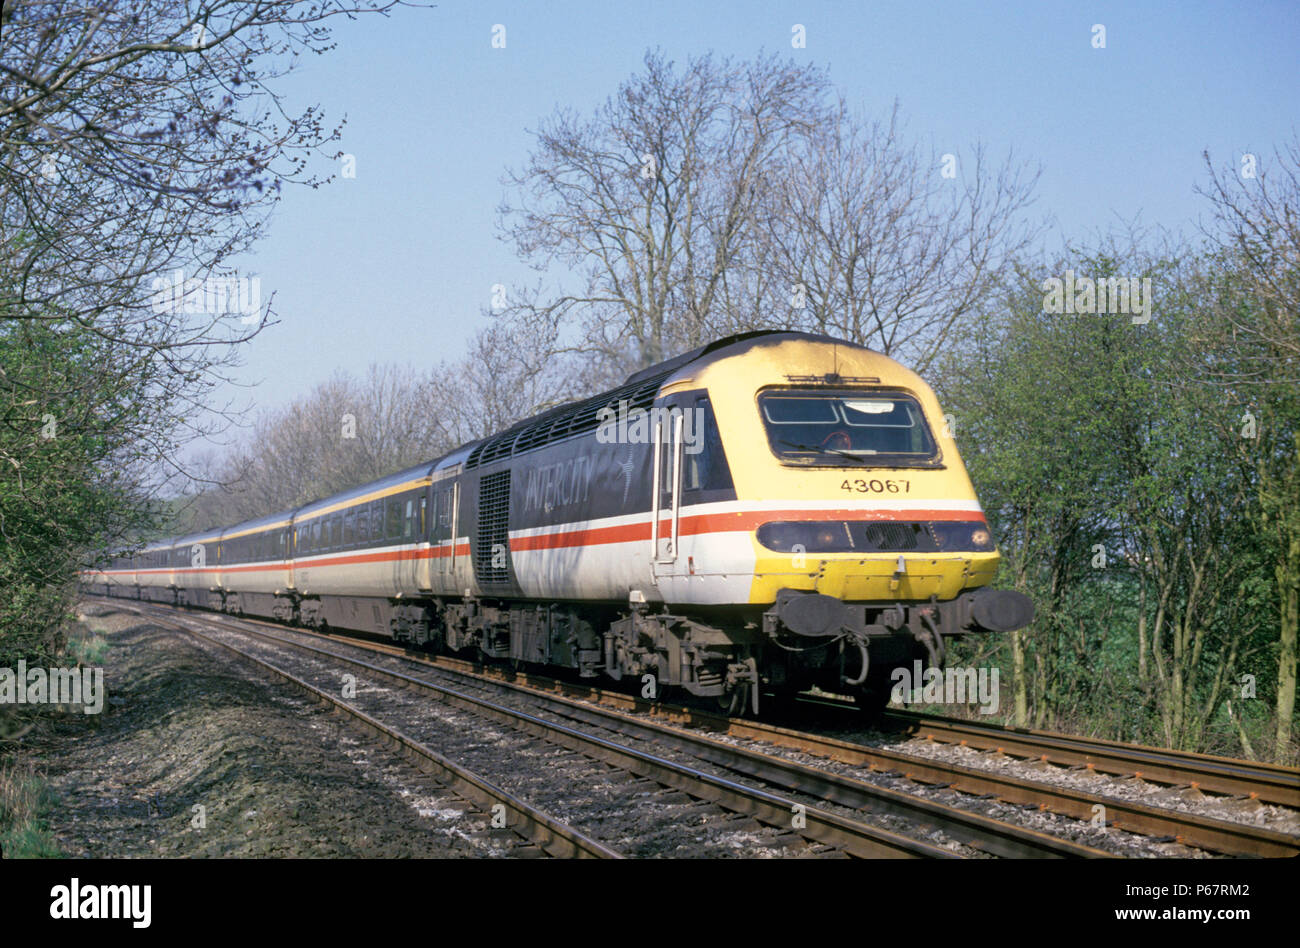 One of only eight Class 43 HST power cars fitted with buffers to make them compatible with Class 91 power cars on the East Coast Main Line C 1993 - Stock Image